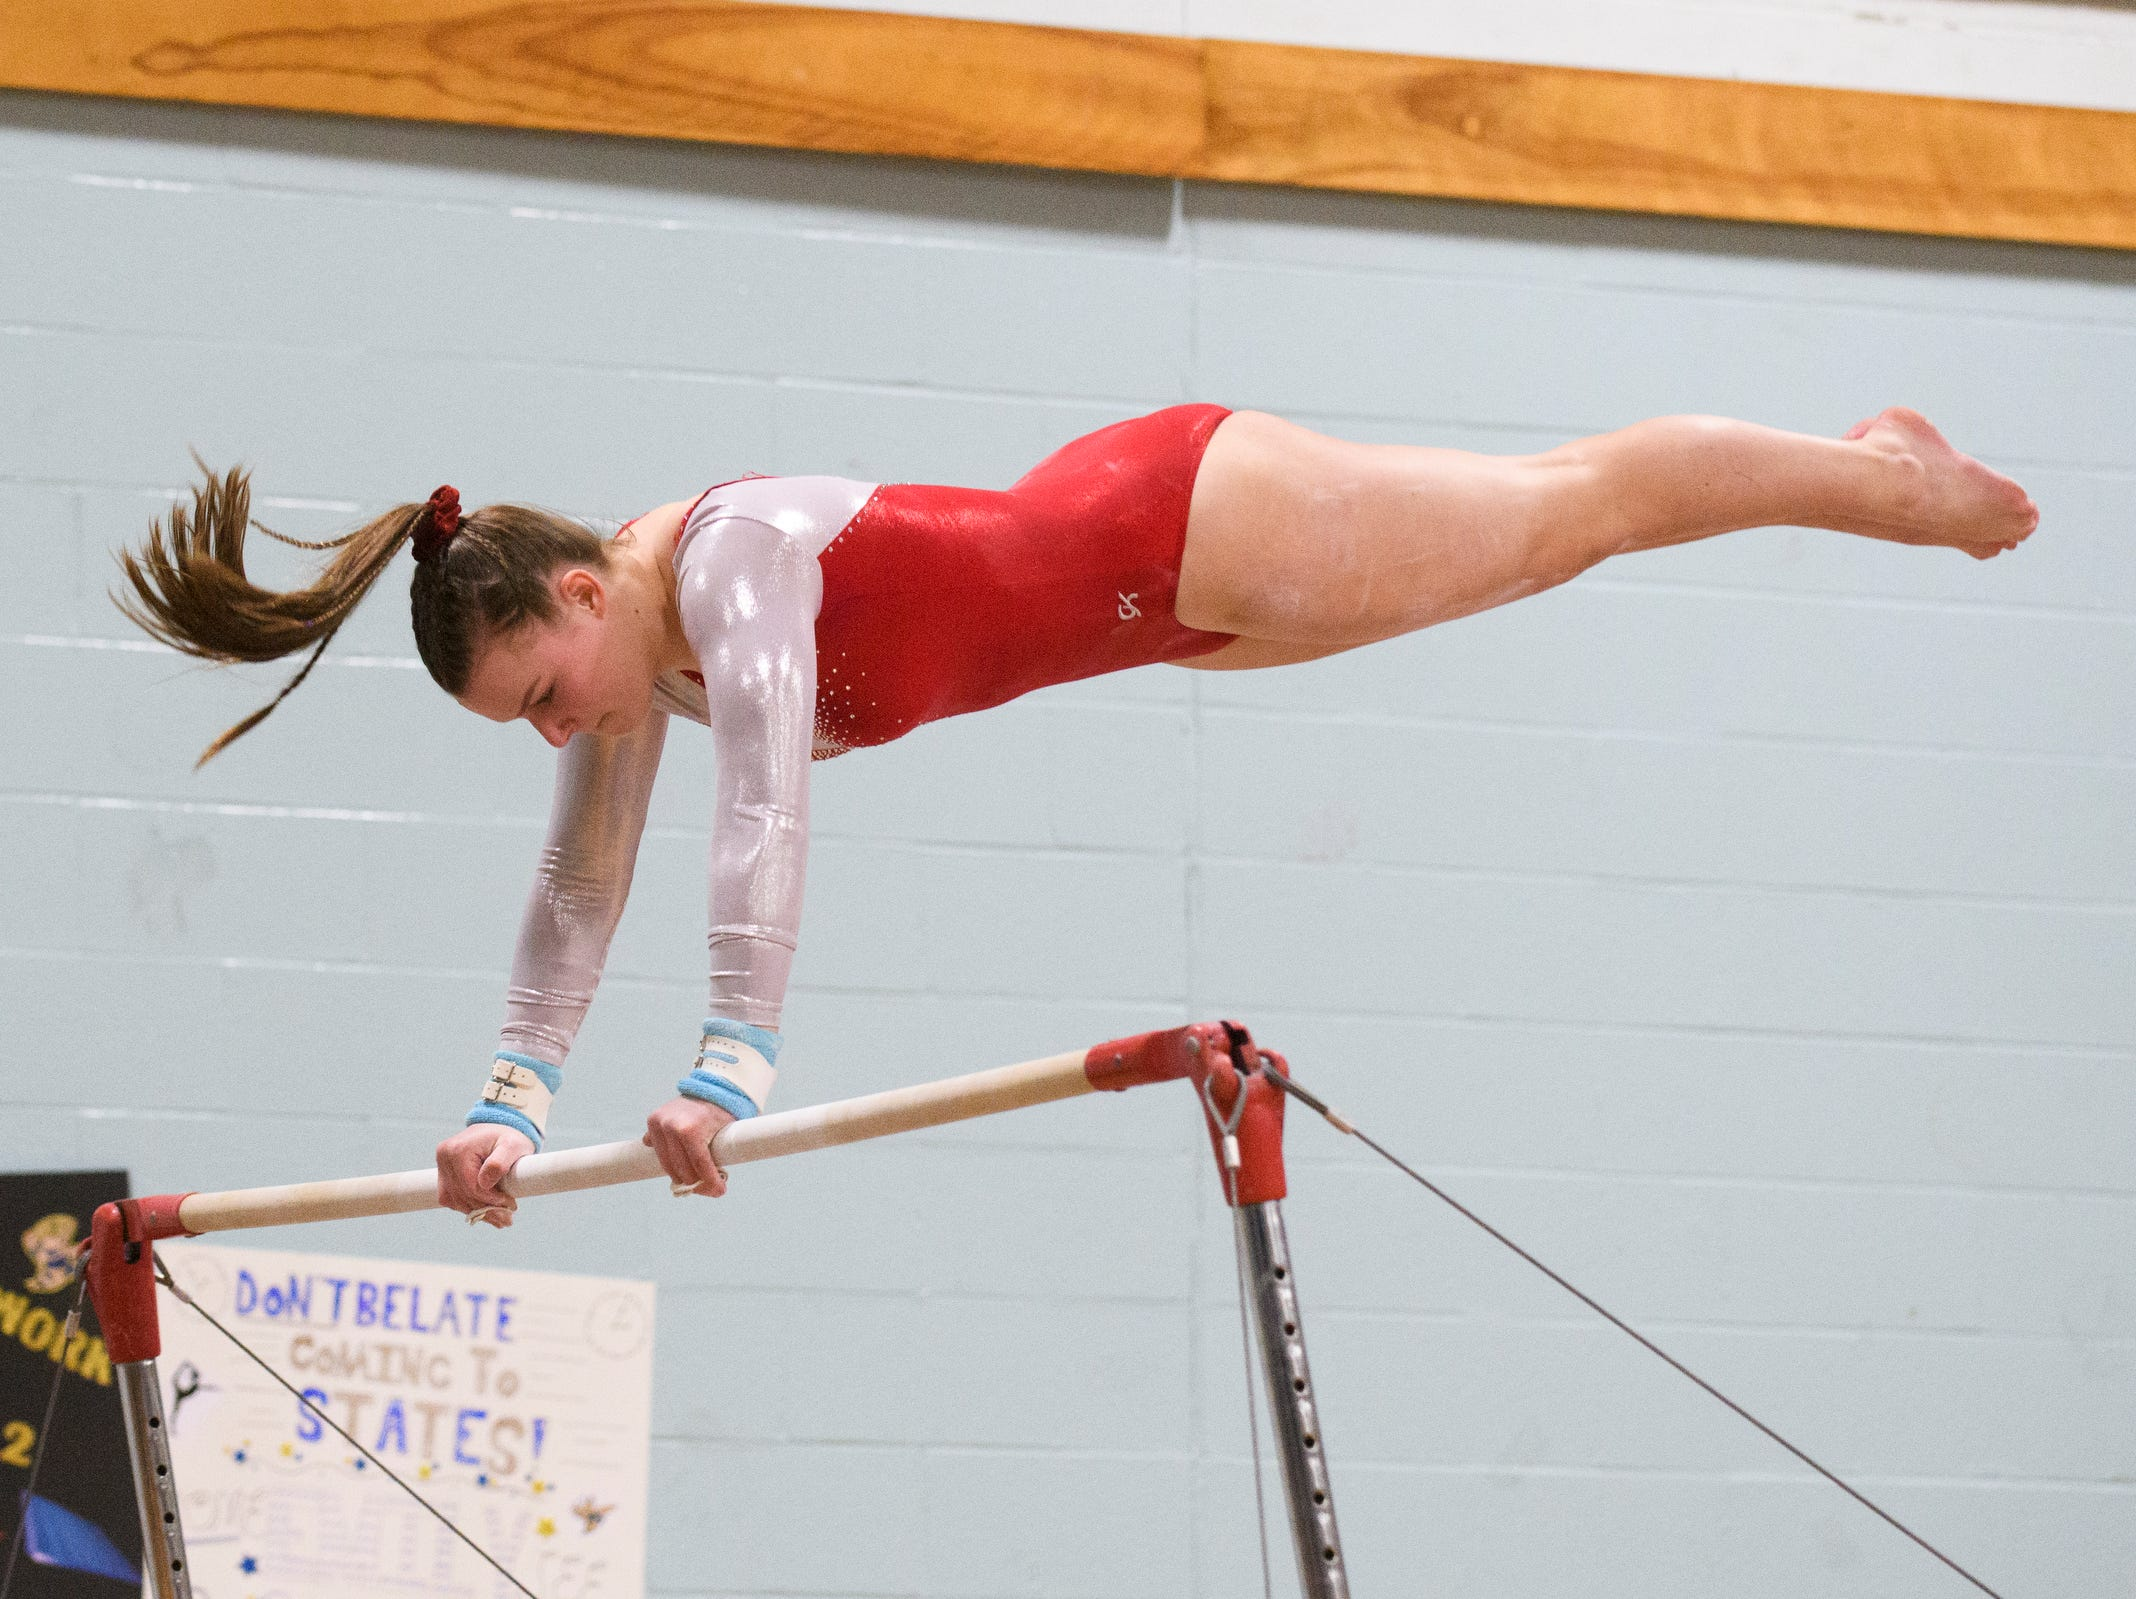 CVU's Delany Miller-Bottoms competes in the bars during the 2019 high school gymnastics championship at Essex High School on Saturday afternoon February 16, 2019 in Essex, Vermont.